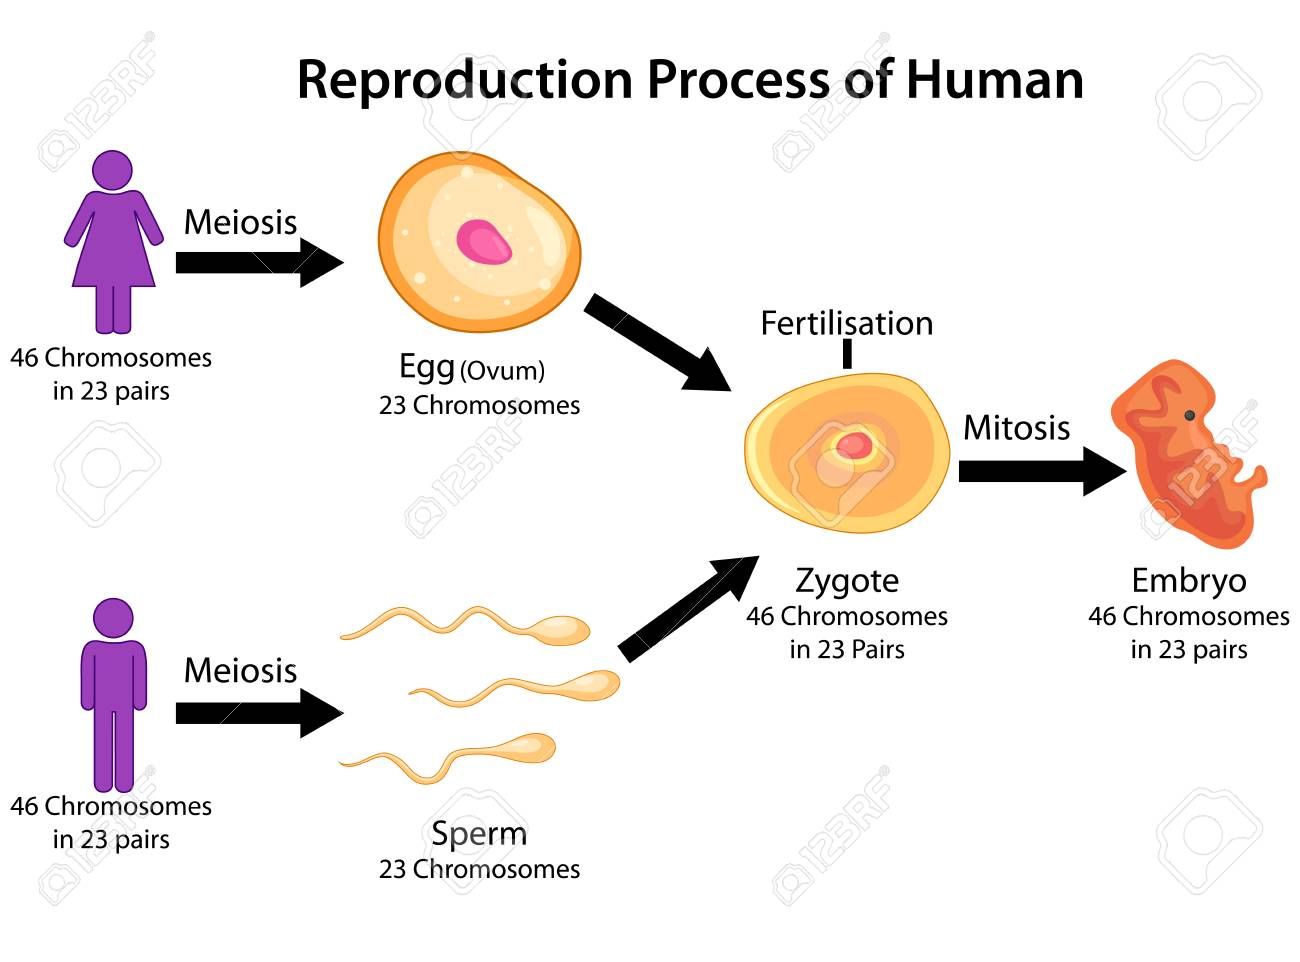 education chart of biology for reproduction process of human